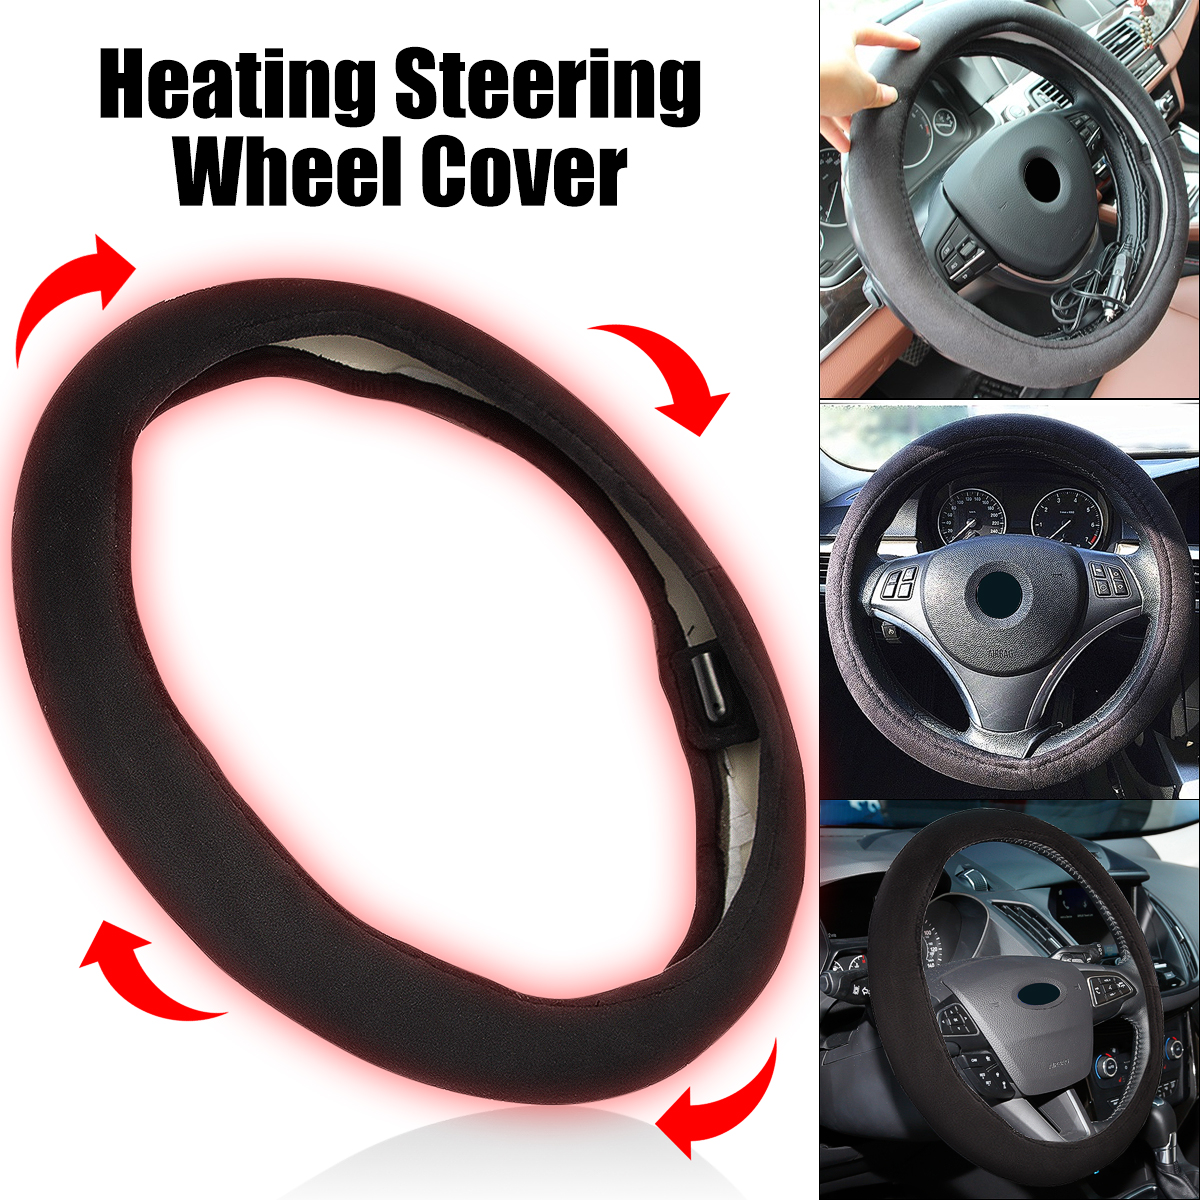 12V 38cm Car Lighter Plug Heated Heating Electric Steering Wheel Covers Warmer Winter Steering Covers Universal covers